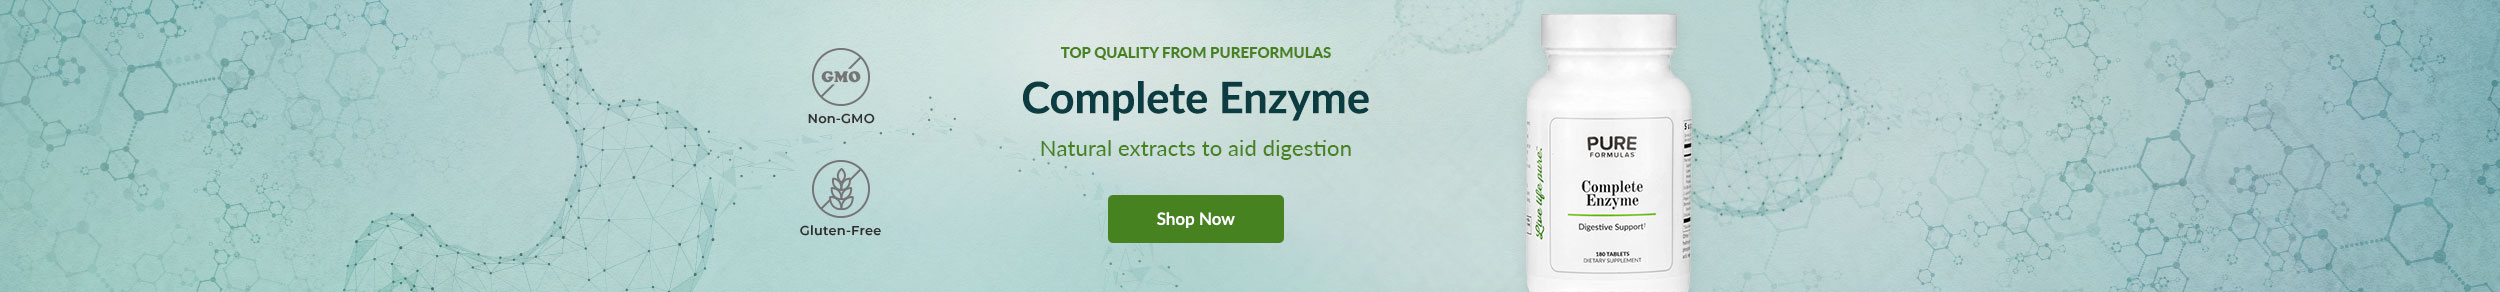 https://i3.pureformulas.net/images/static/Pureformulas-Digestive-Health-Essentials-Complete-Enzyme_slide2_062218.jpg